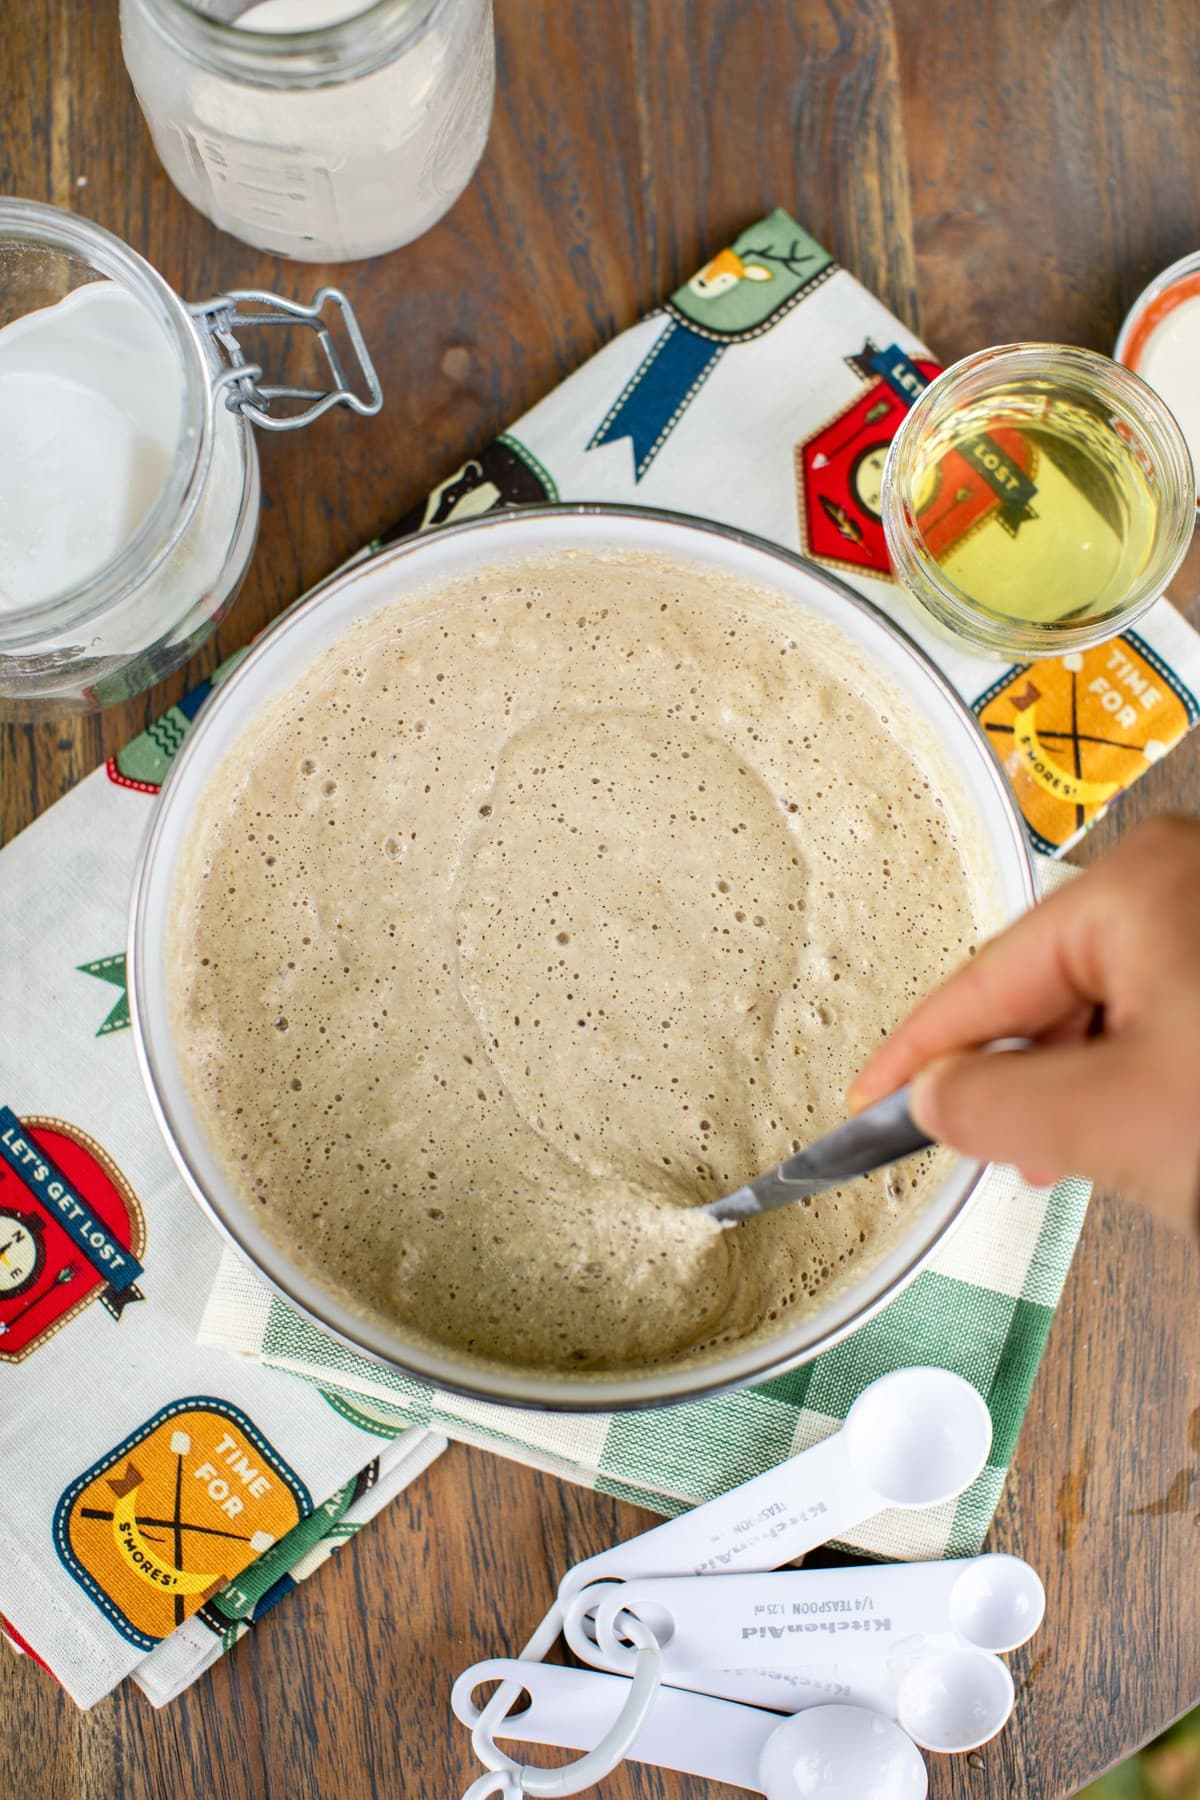 hand mixing bowl of pancake batter on wooden picnic table